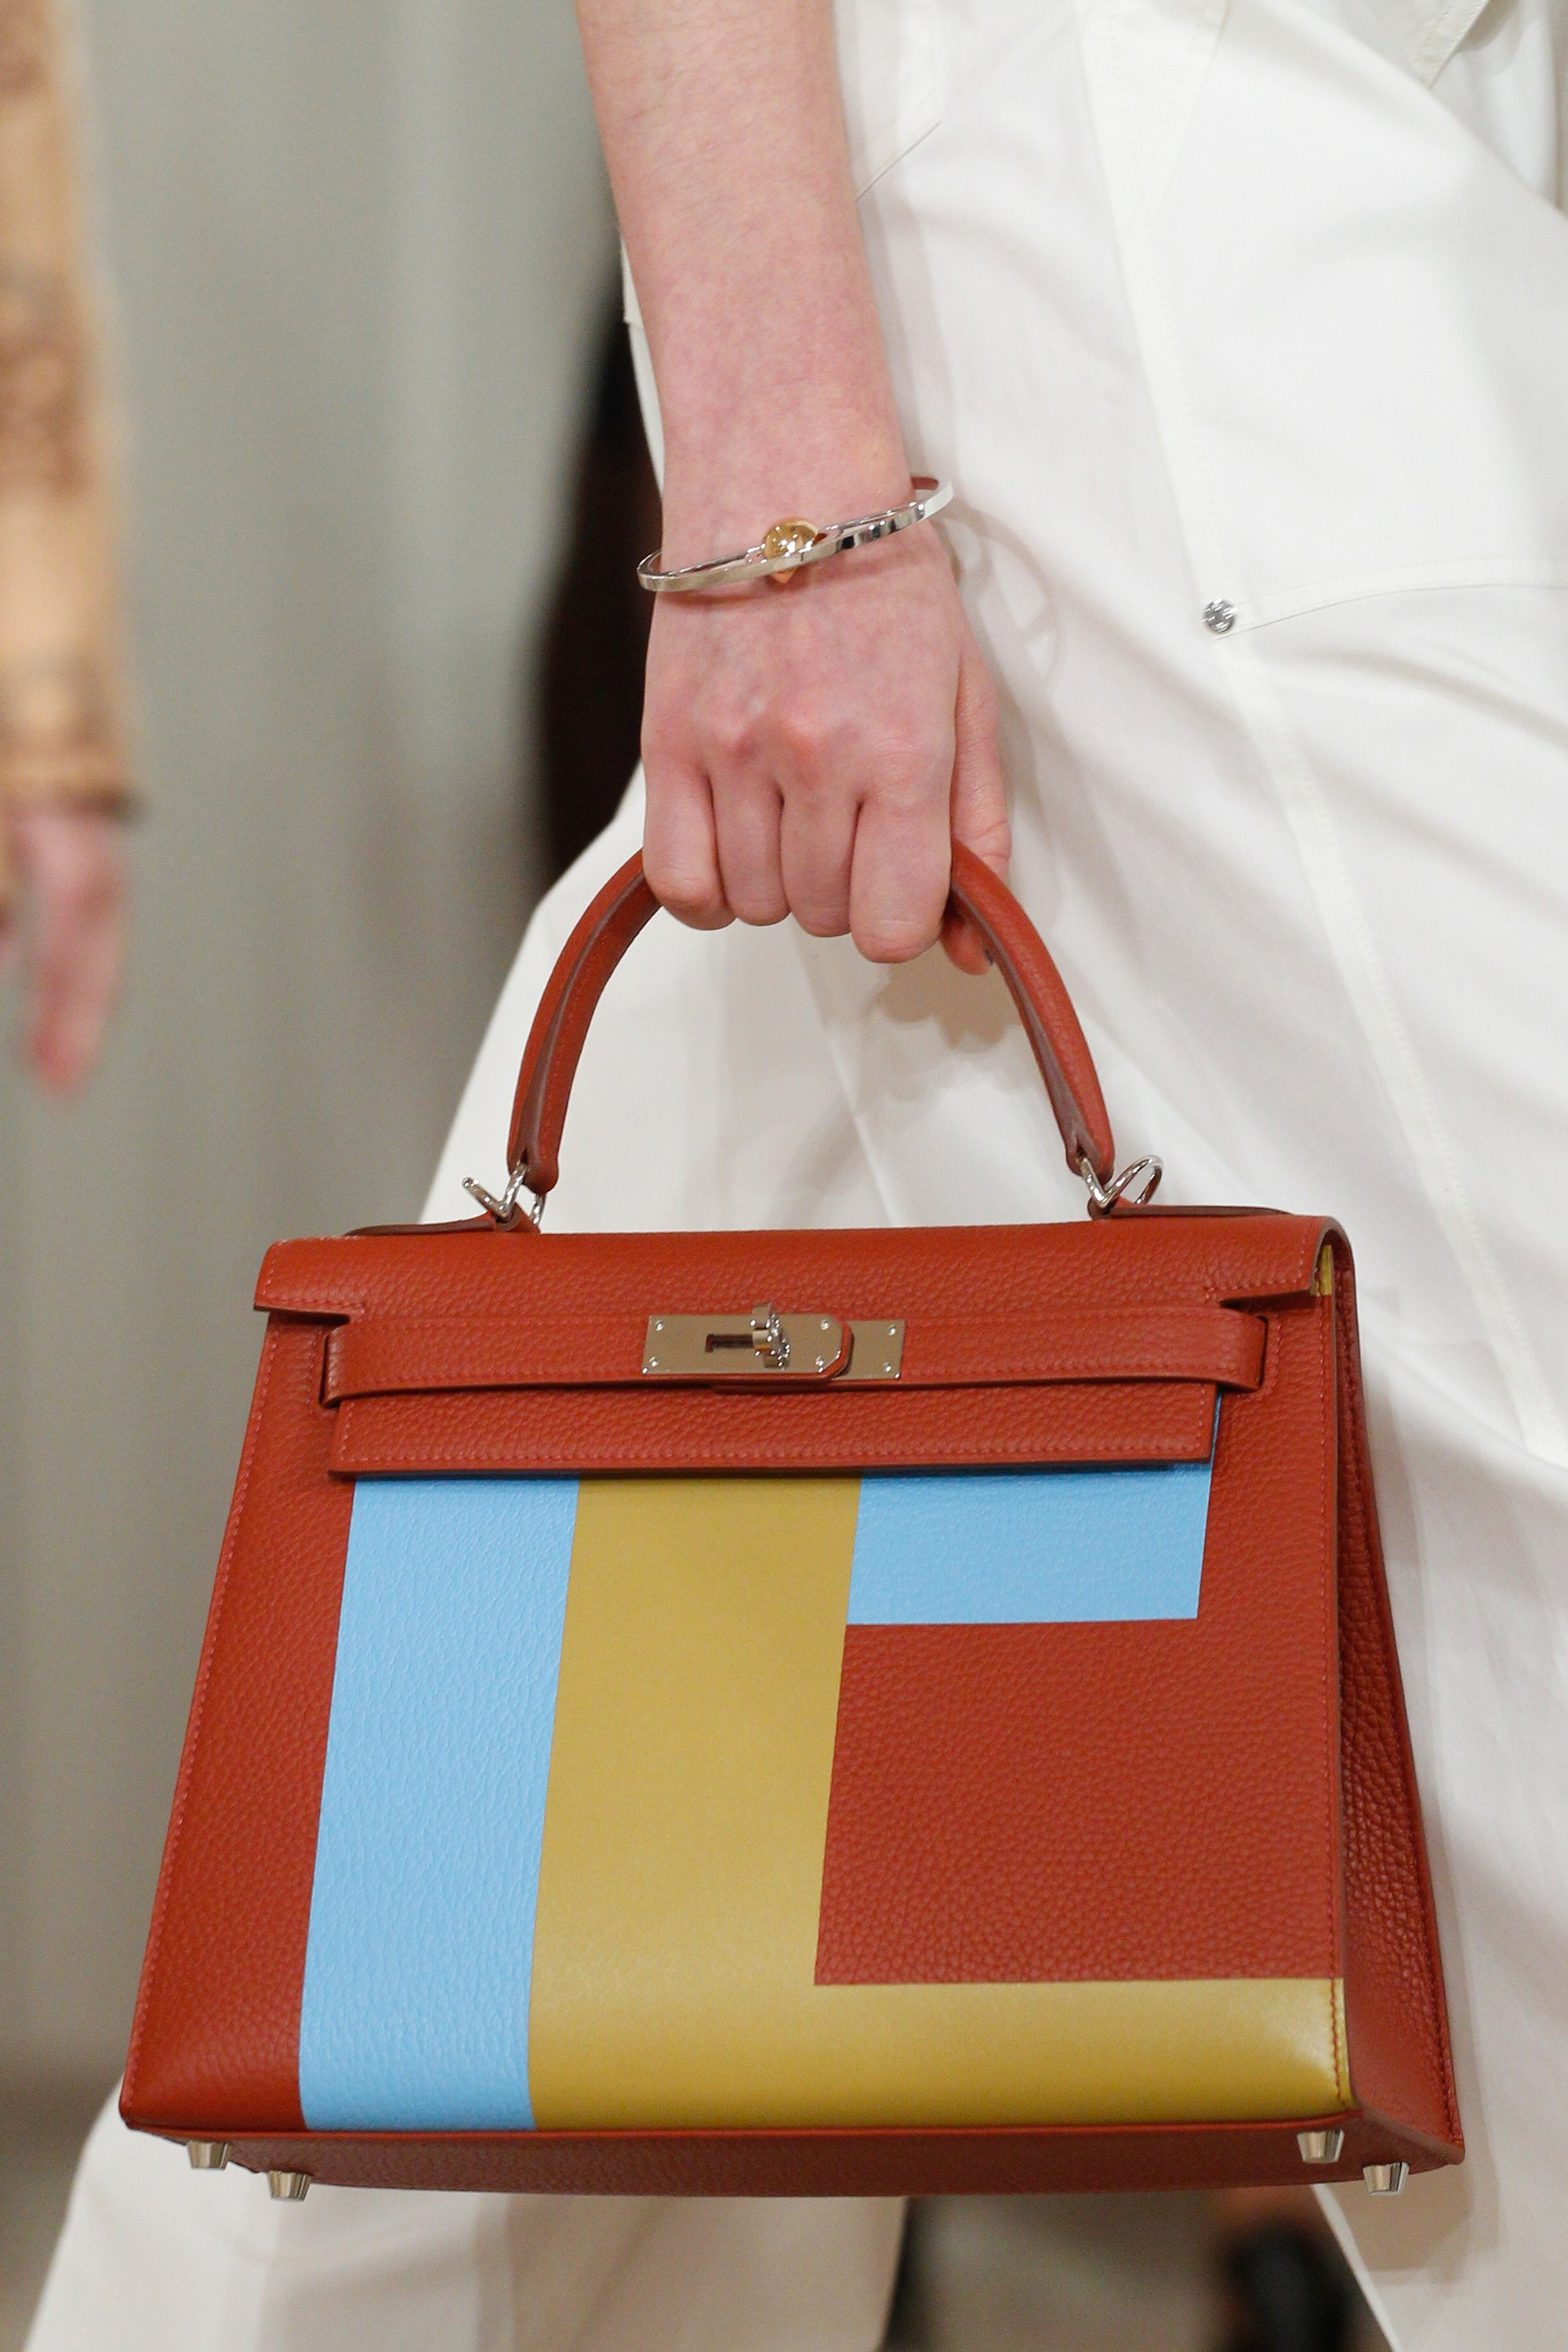 hermes resort 2018 runway bag collection includes birkin with piping spotted fashion. Black Bedroom Furniture Sets. Home Design Ideas